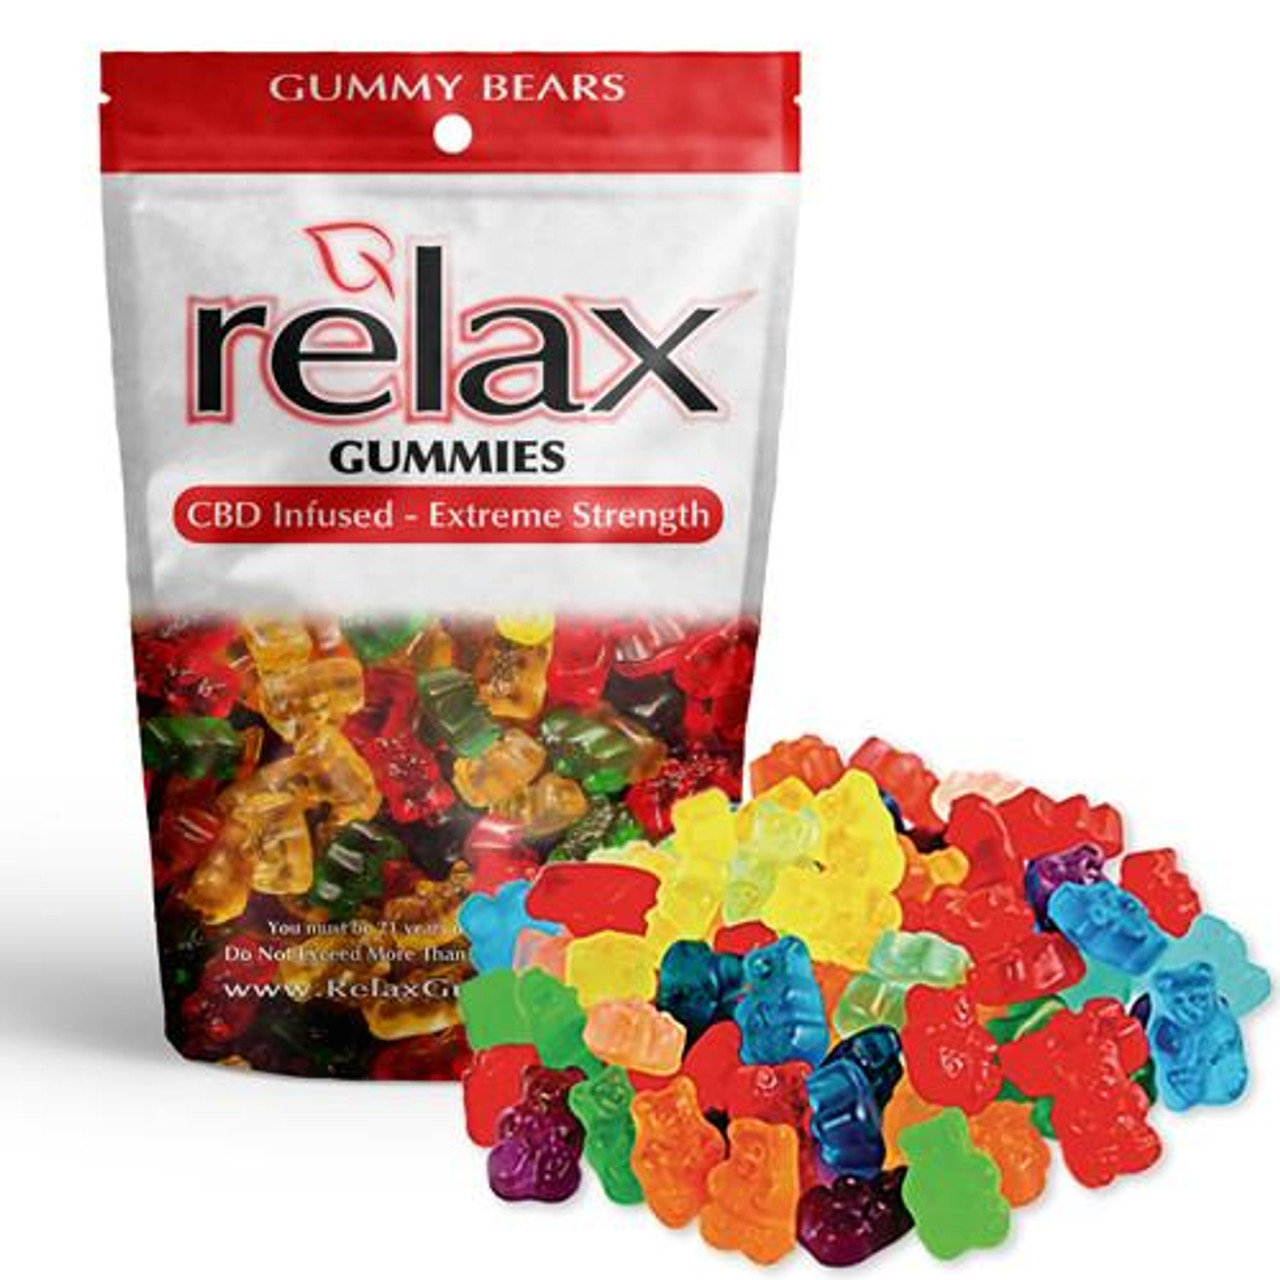 Chill Gummies - CBD Infused Gummy Bears [Edible Candy]